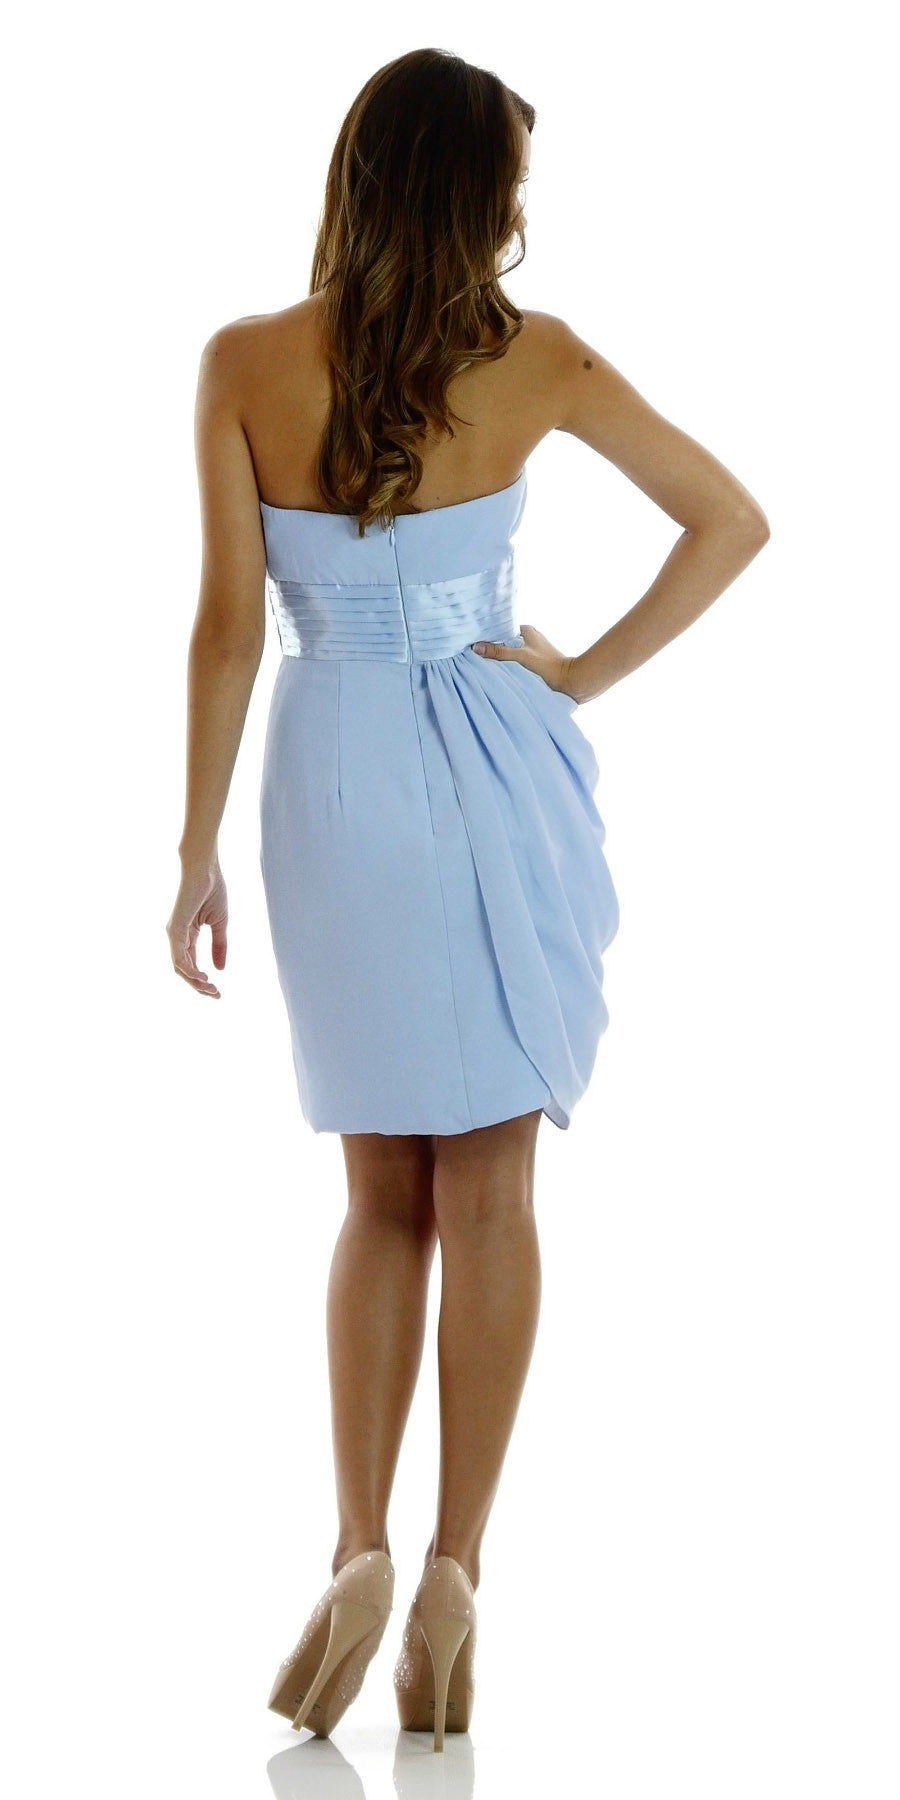 ON SPECIAL LIMITED STOCK - Short Strapless Sweetheart Neckline Ice Blue Sheath Dress